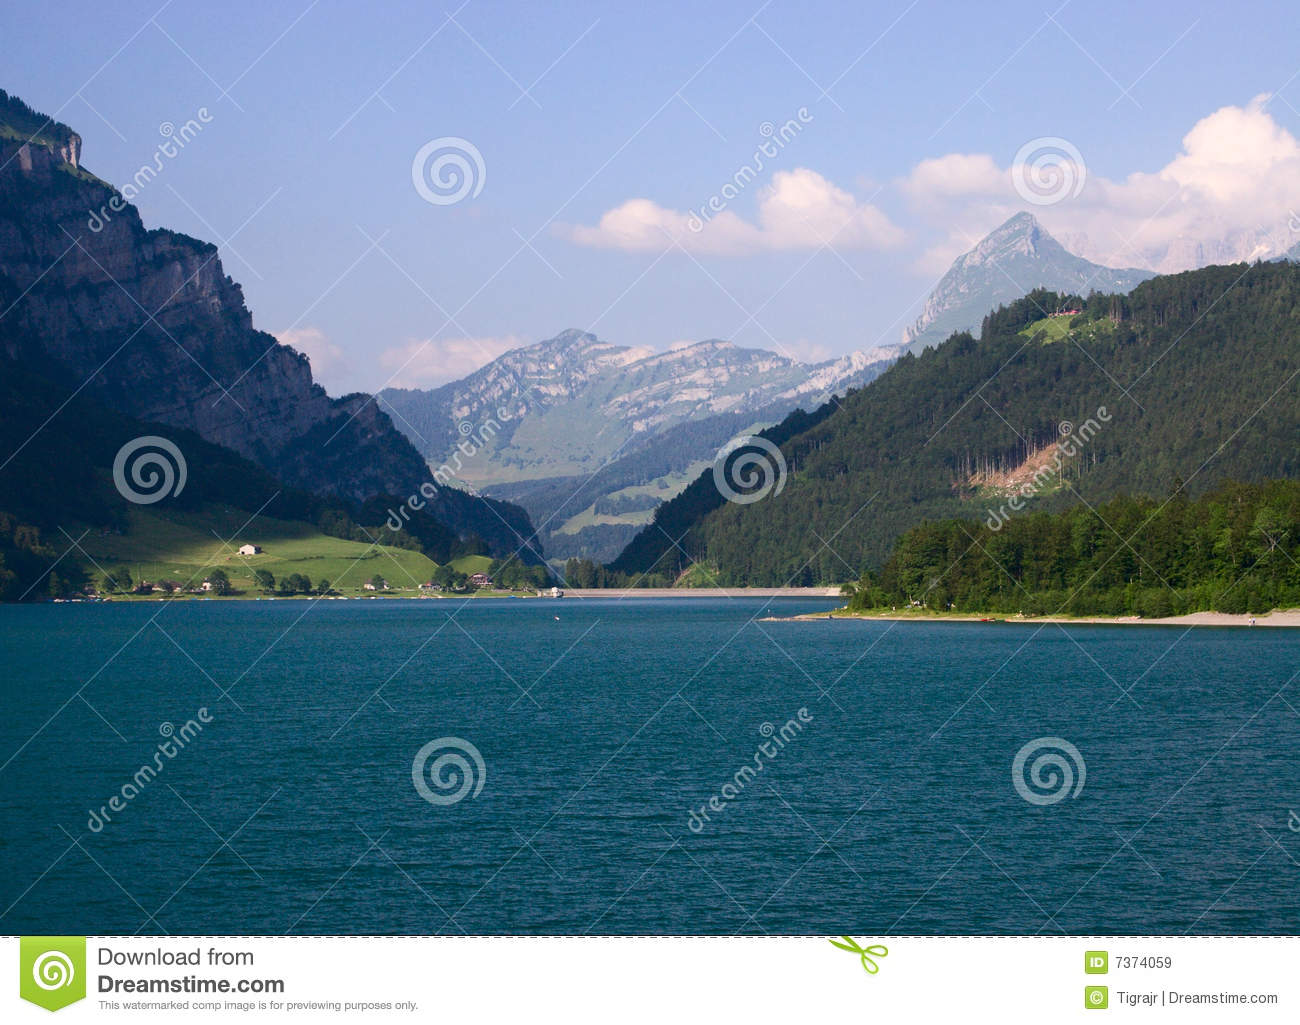 Lake and mountains